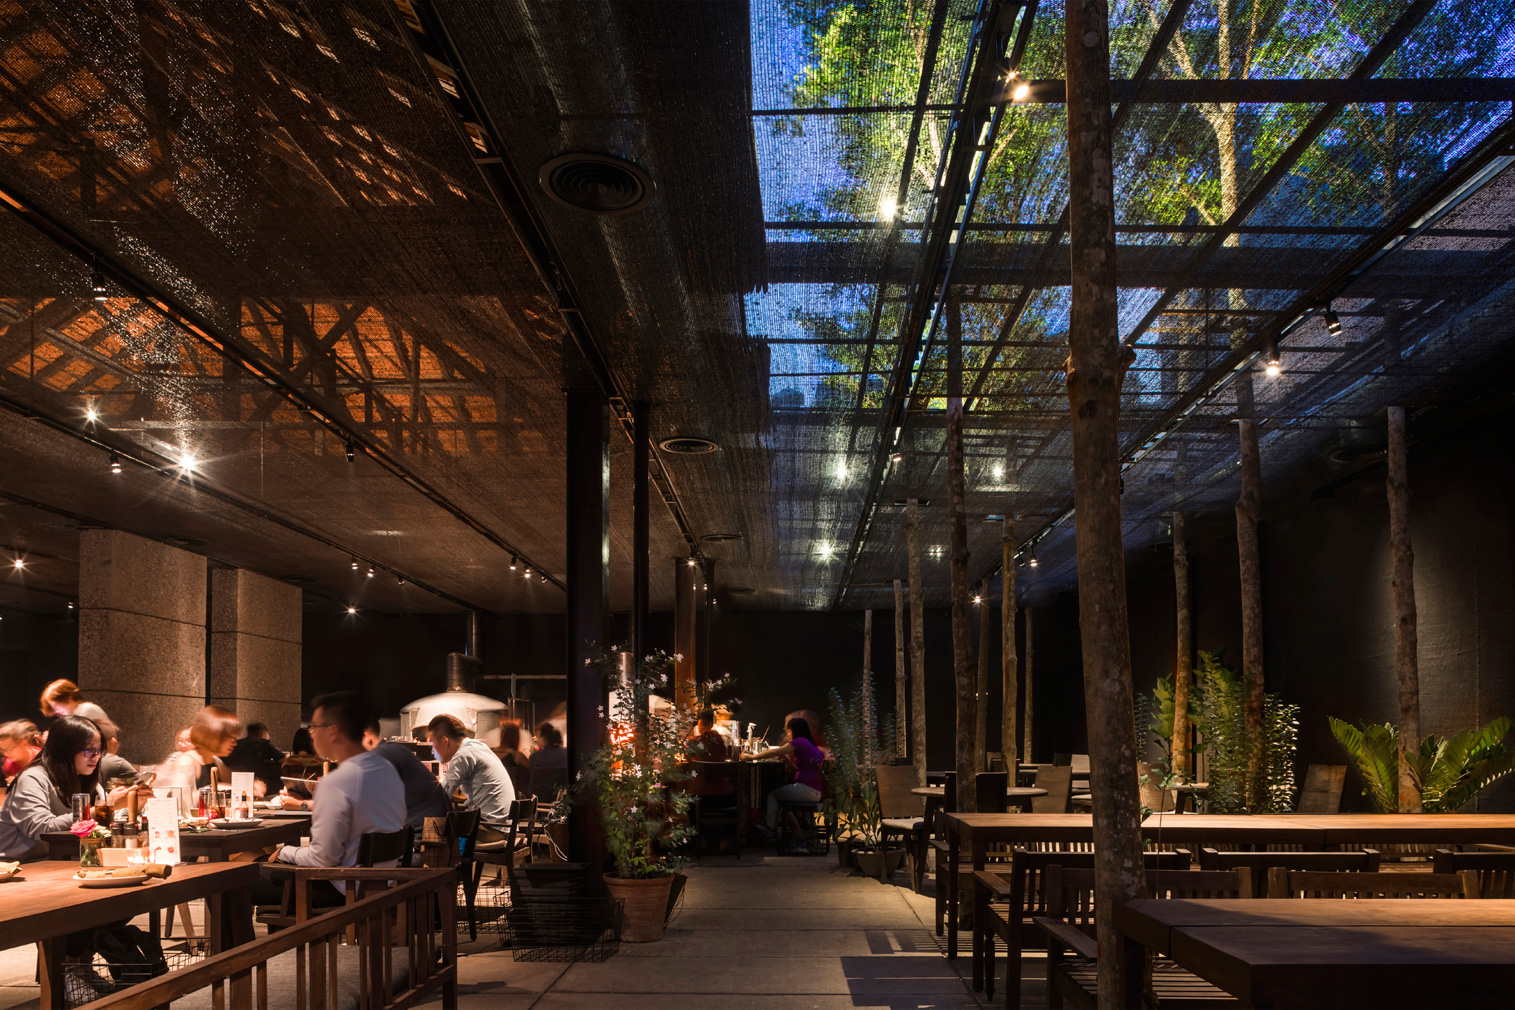 Ho Chi Minh City restaurant shades diners with agricultural netting